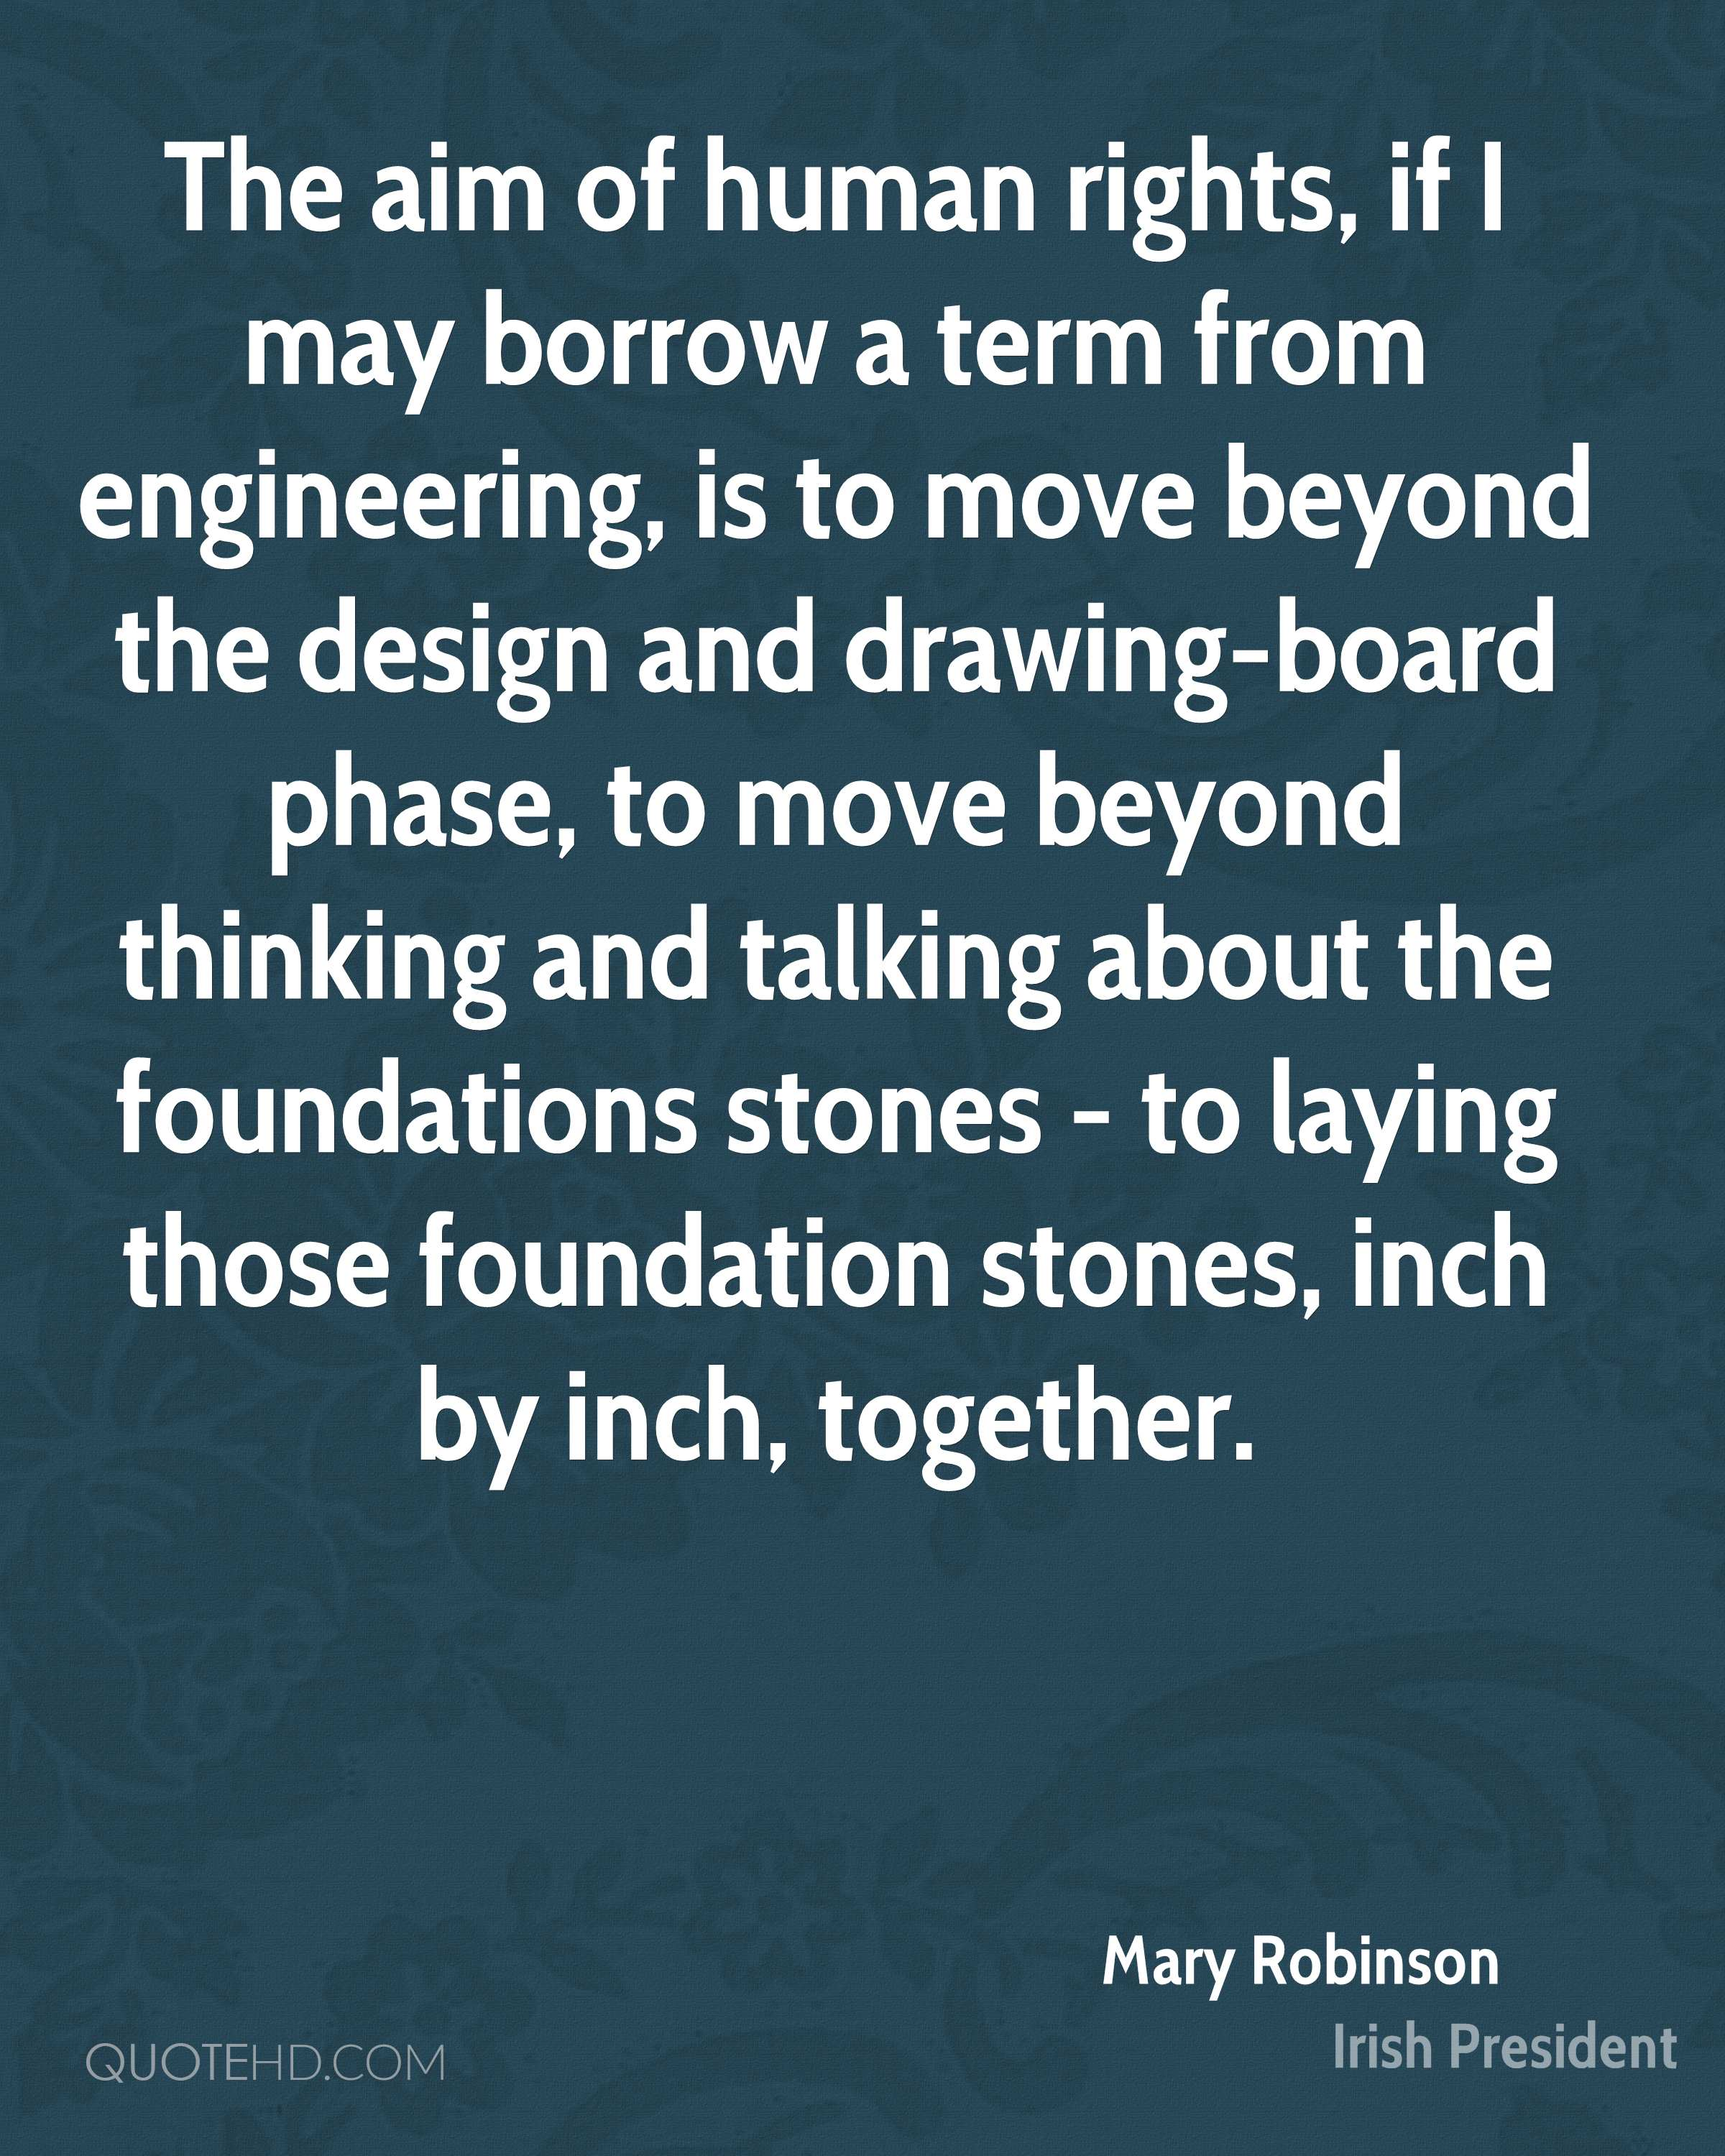 The aim of human rights, if I may borrow a term from engineering, is to move beyond the design and drawing-board phase, to move beyond thinking and talking about the foundations stones - to laying those foundation stones, inch by inch, together.